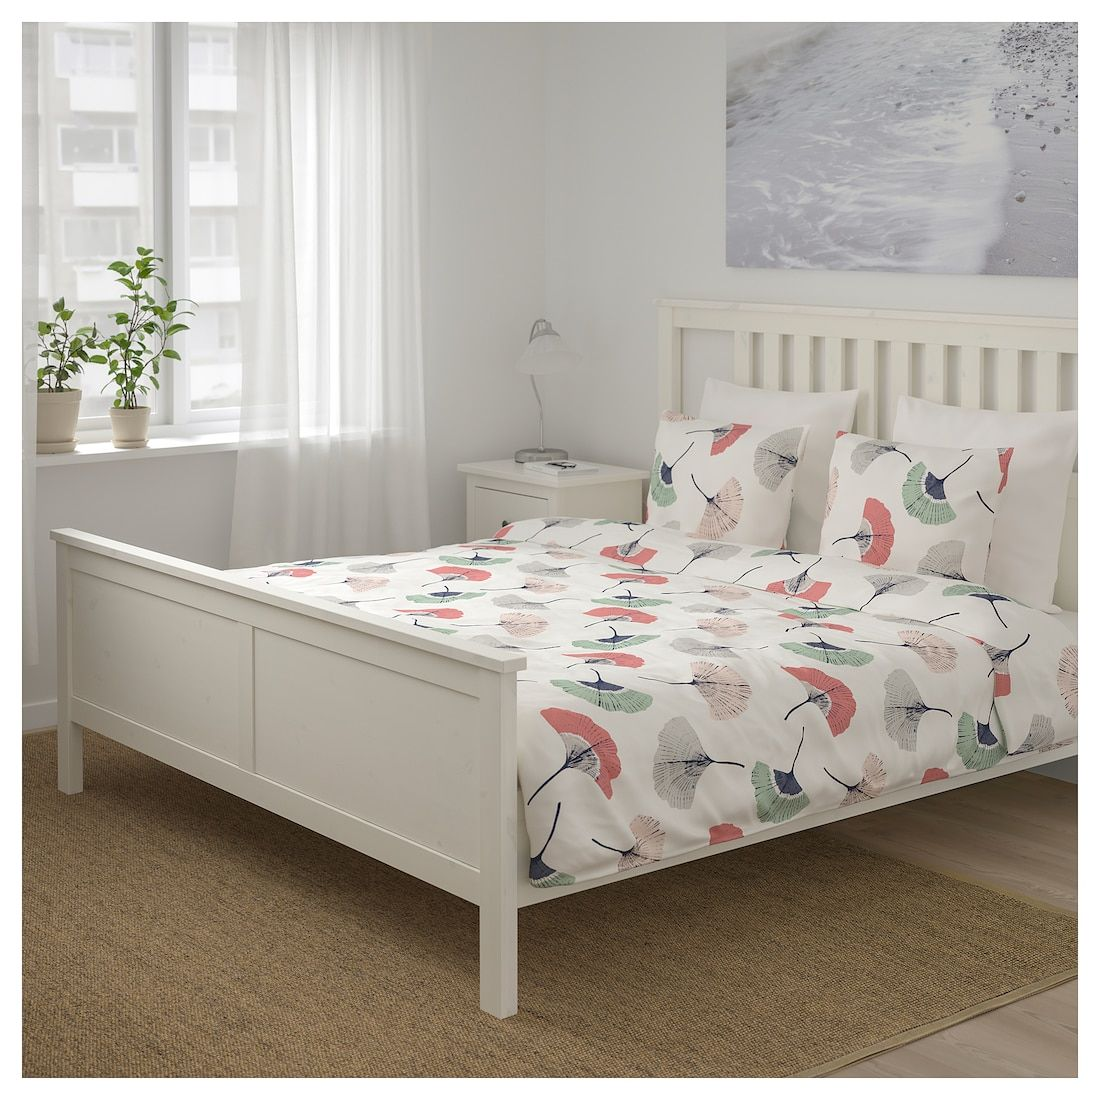 TOVSIPPA Duvet cover and pillowcase(s) white, floral